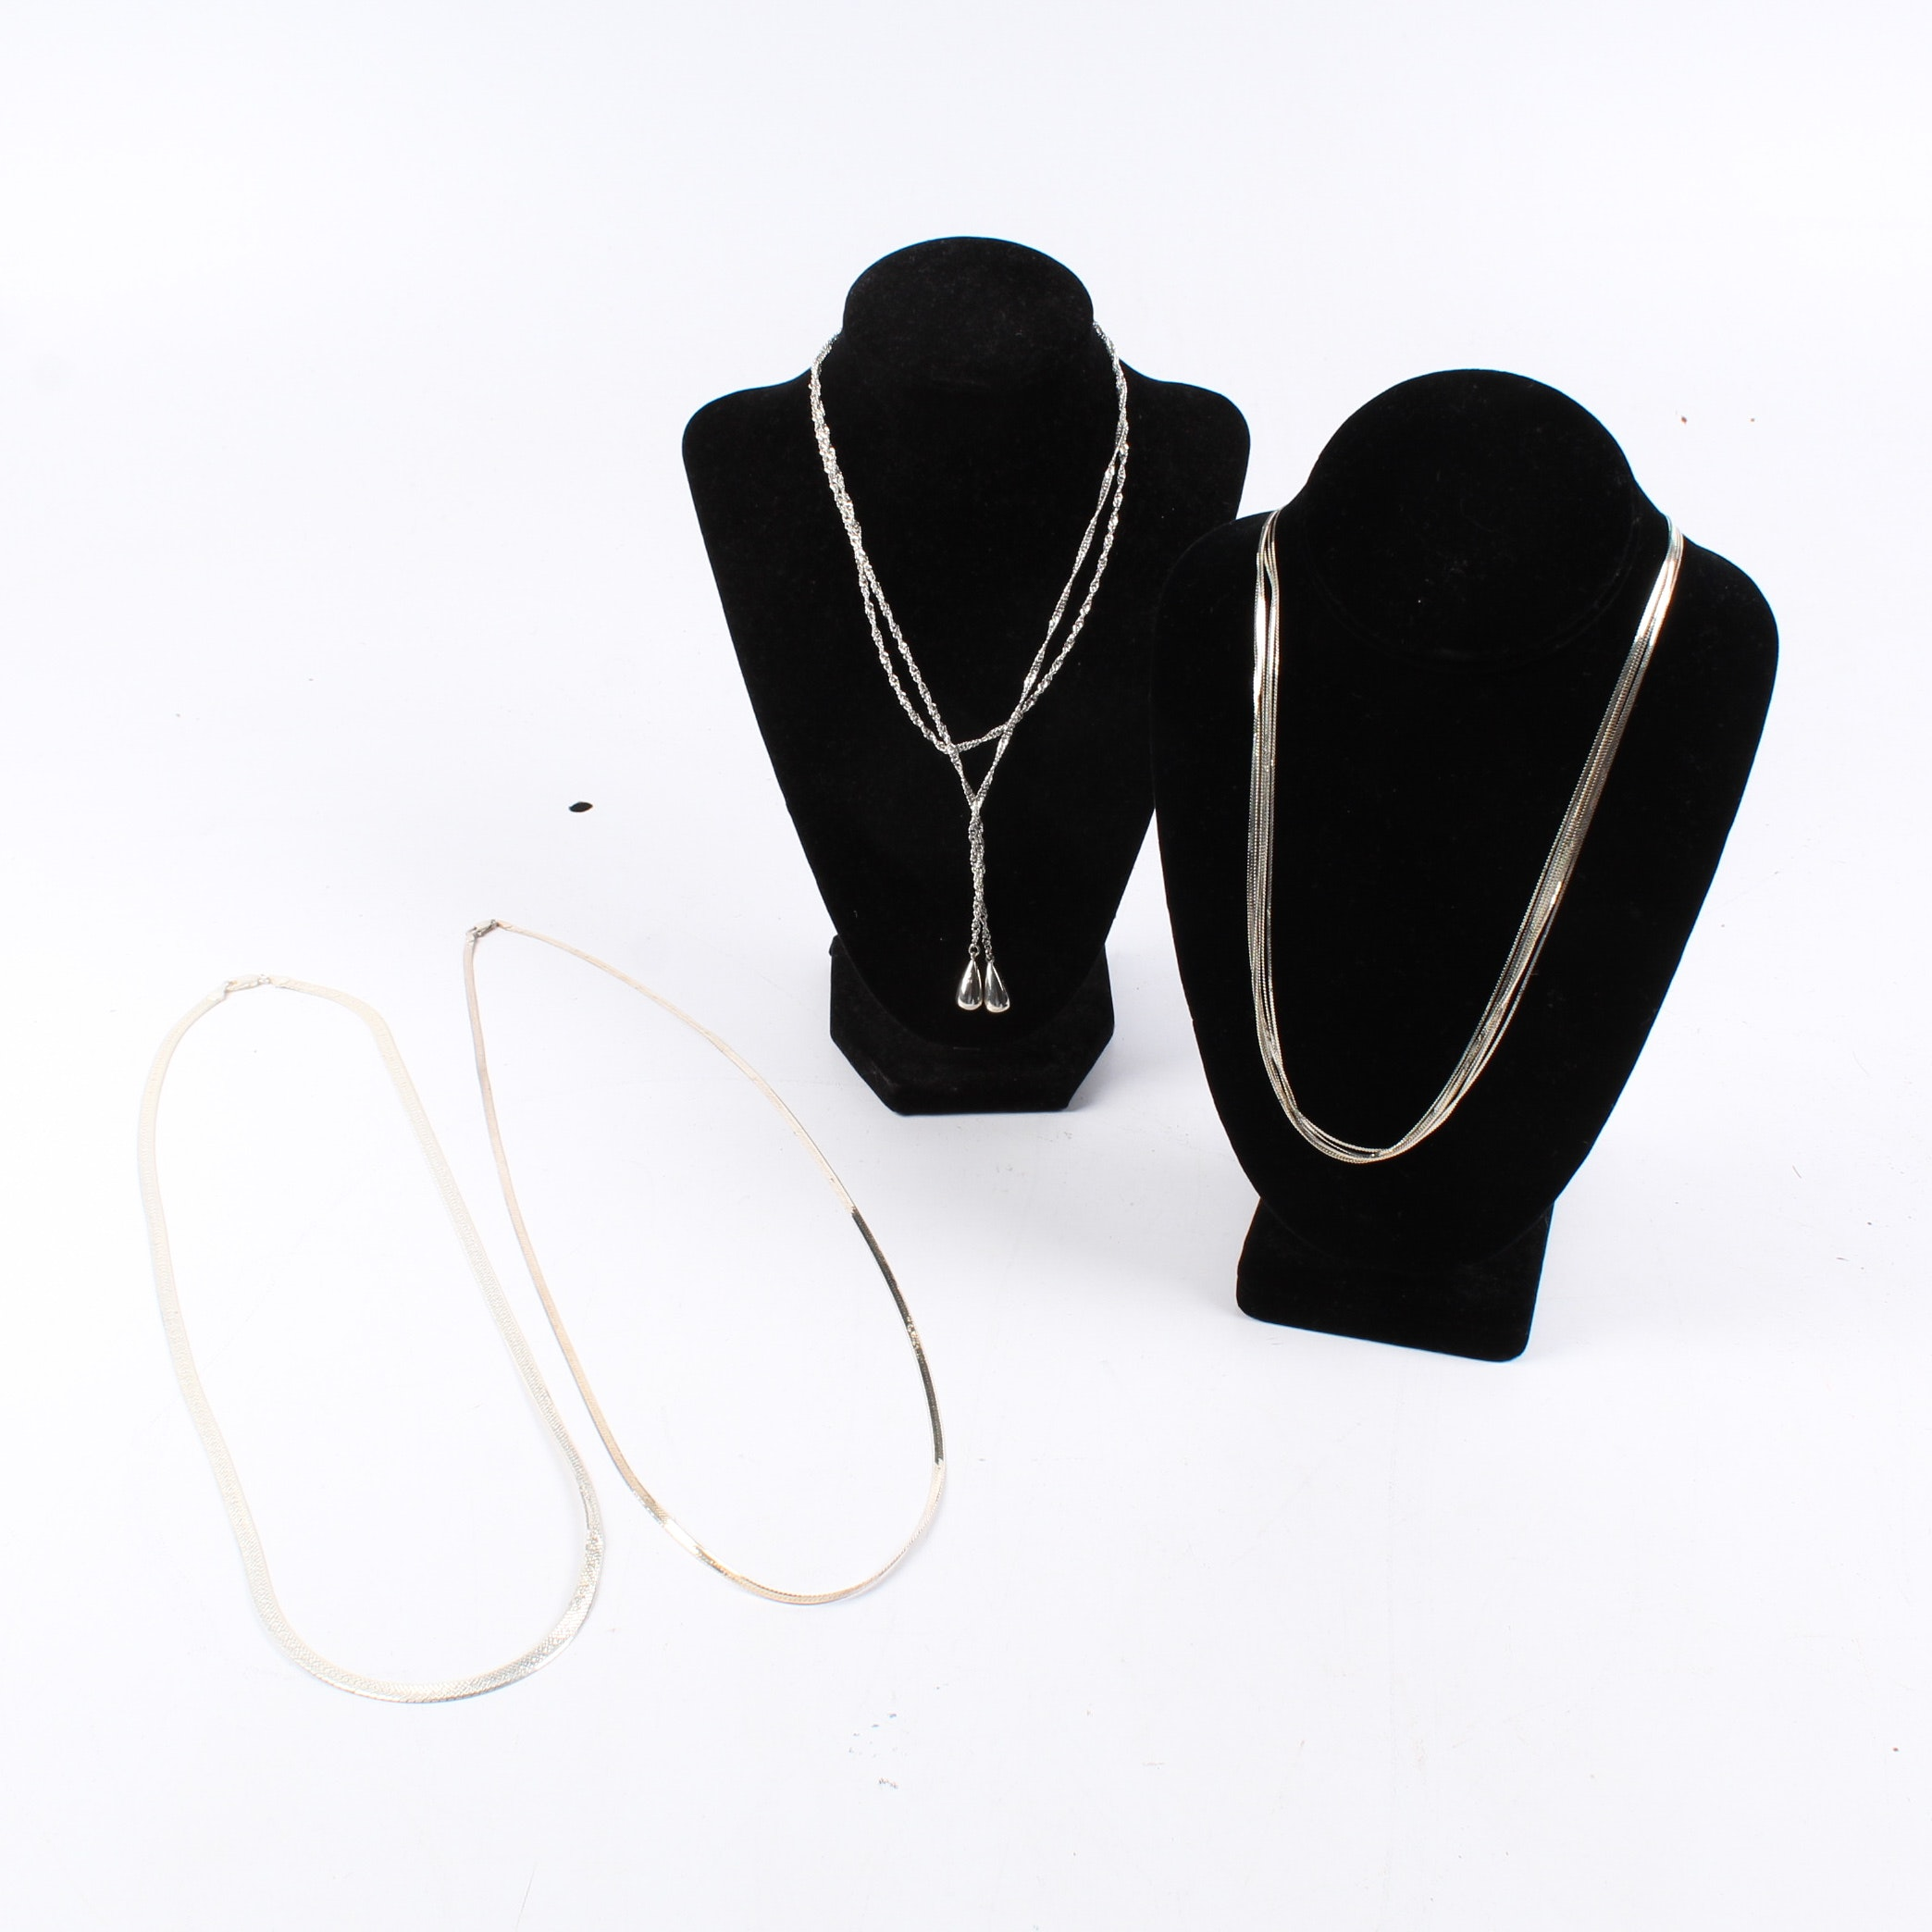 Sterling Silver Necklaces Featuring Lariat and Multi-Strand